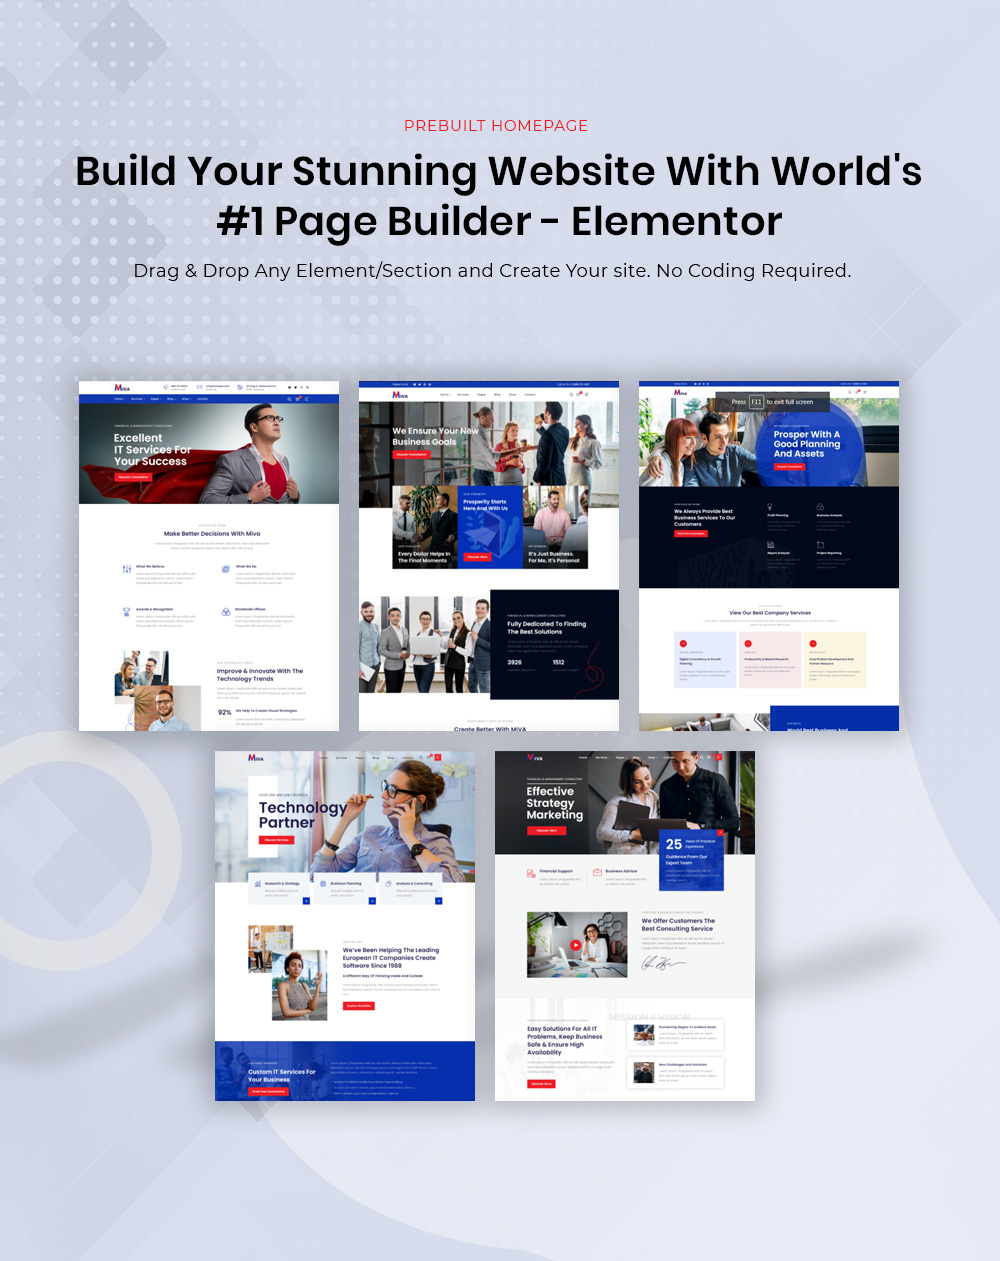 Build Your Stunning Website With Elementor